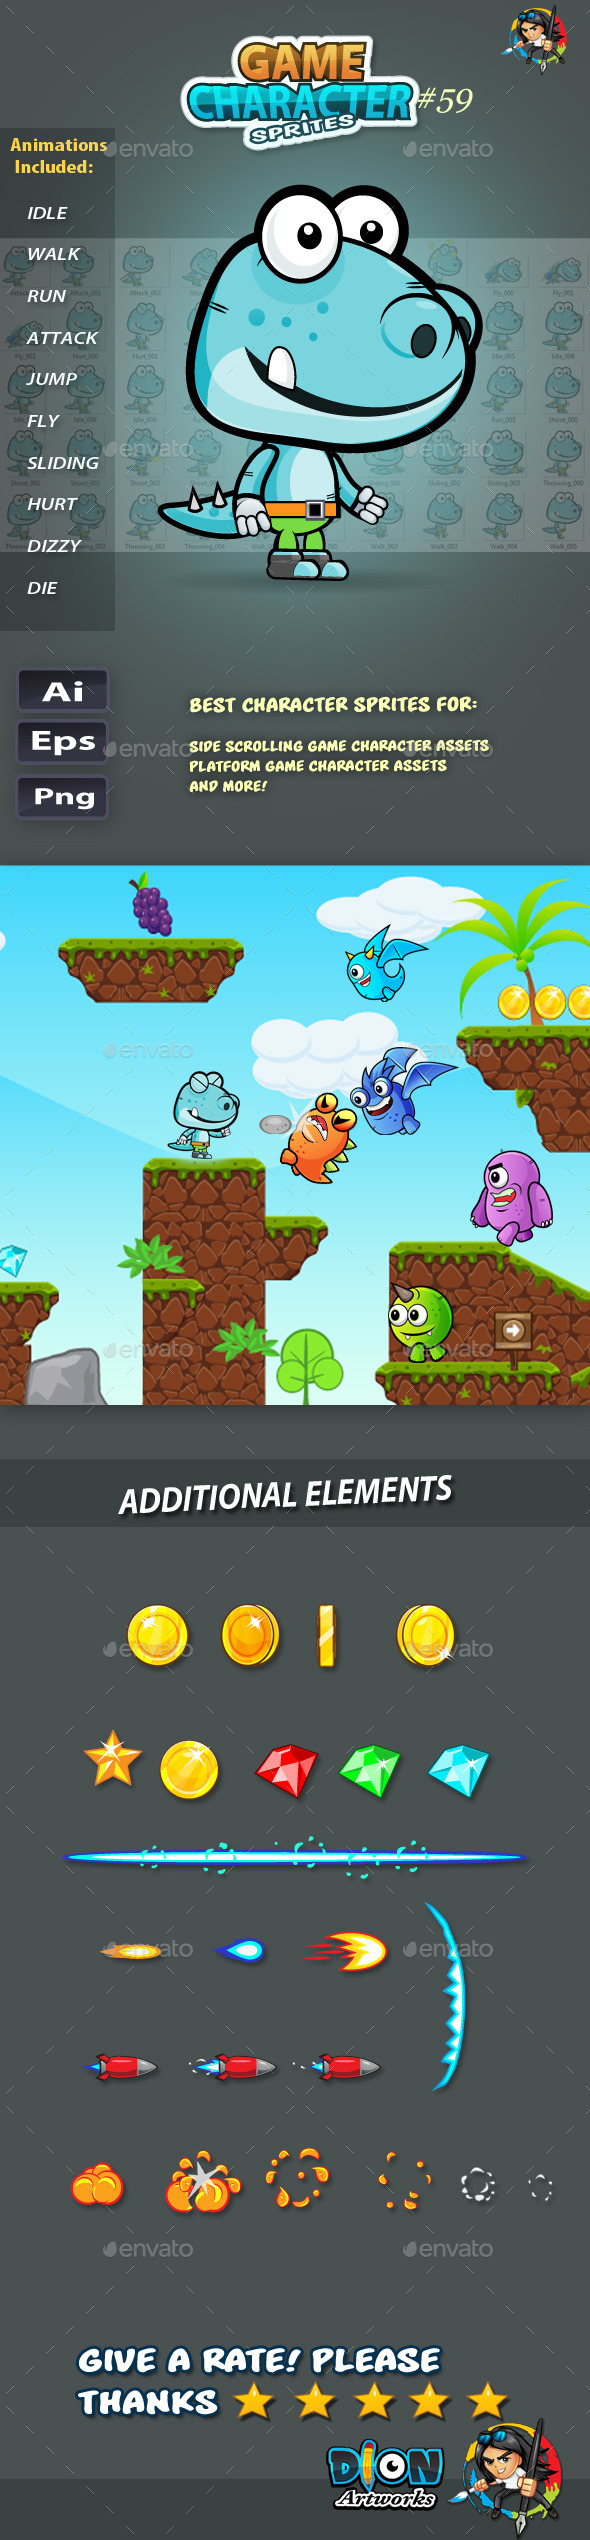 GraphicRiver Dinosaur 2D Game Character Sprites 59 11824116